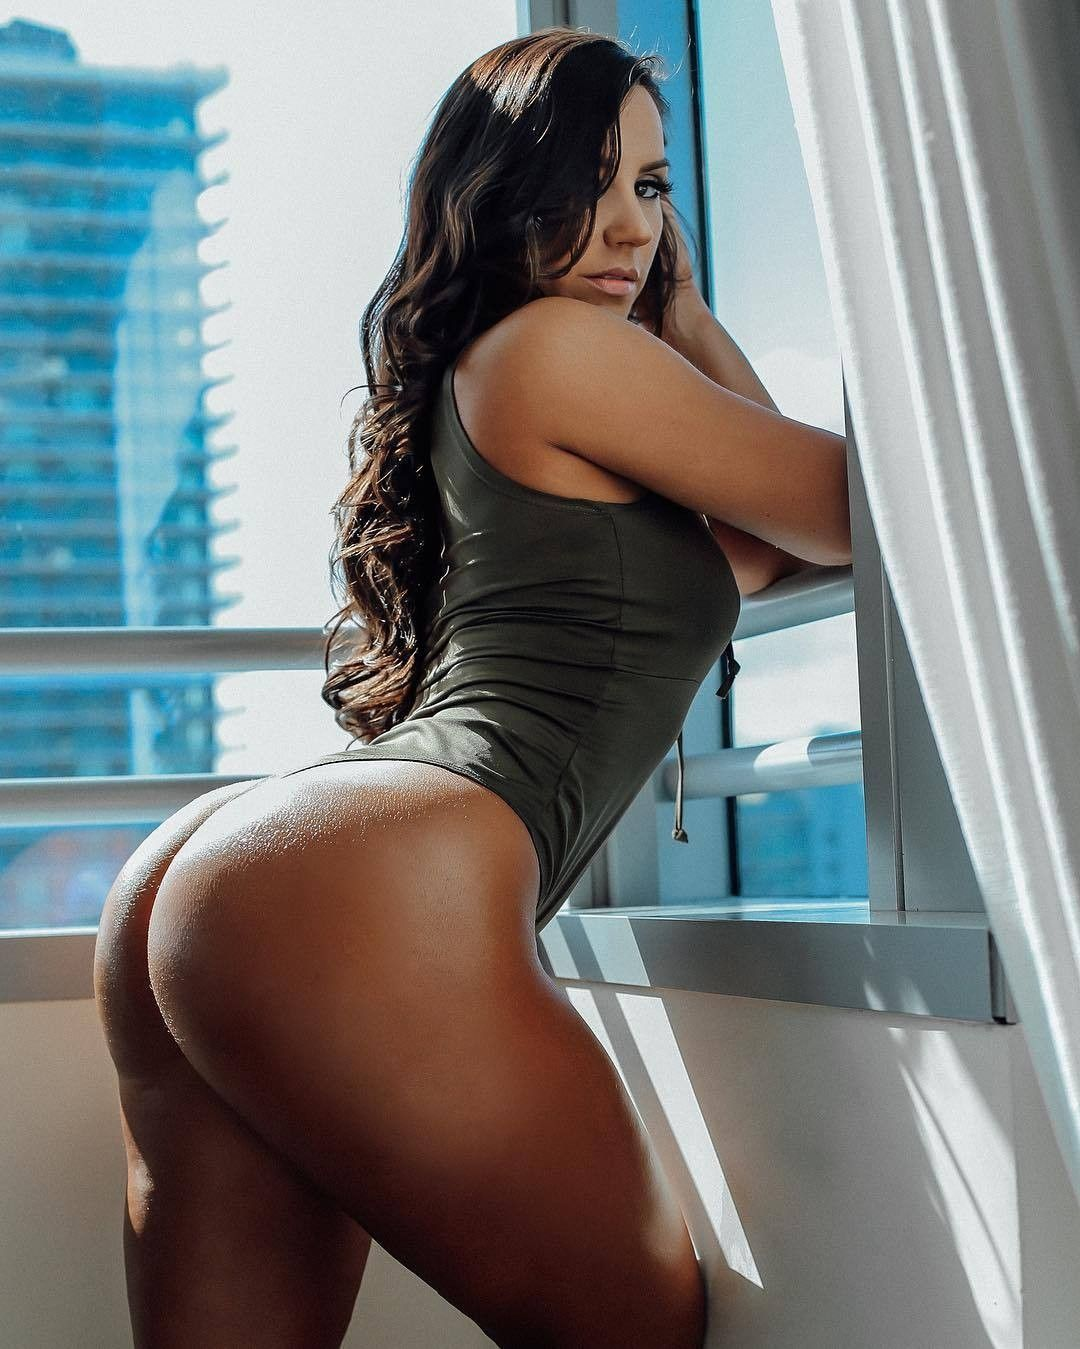 mandycfit   my mandy   pinterest   curves, perfect body and bodies